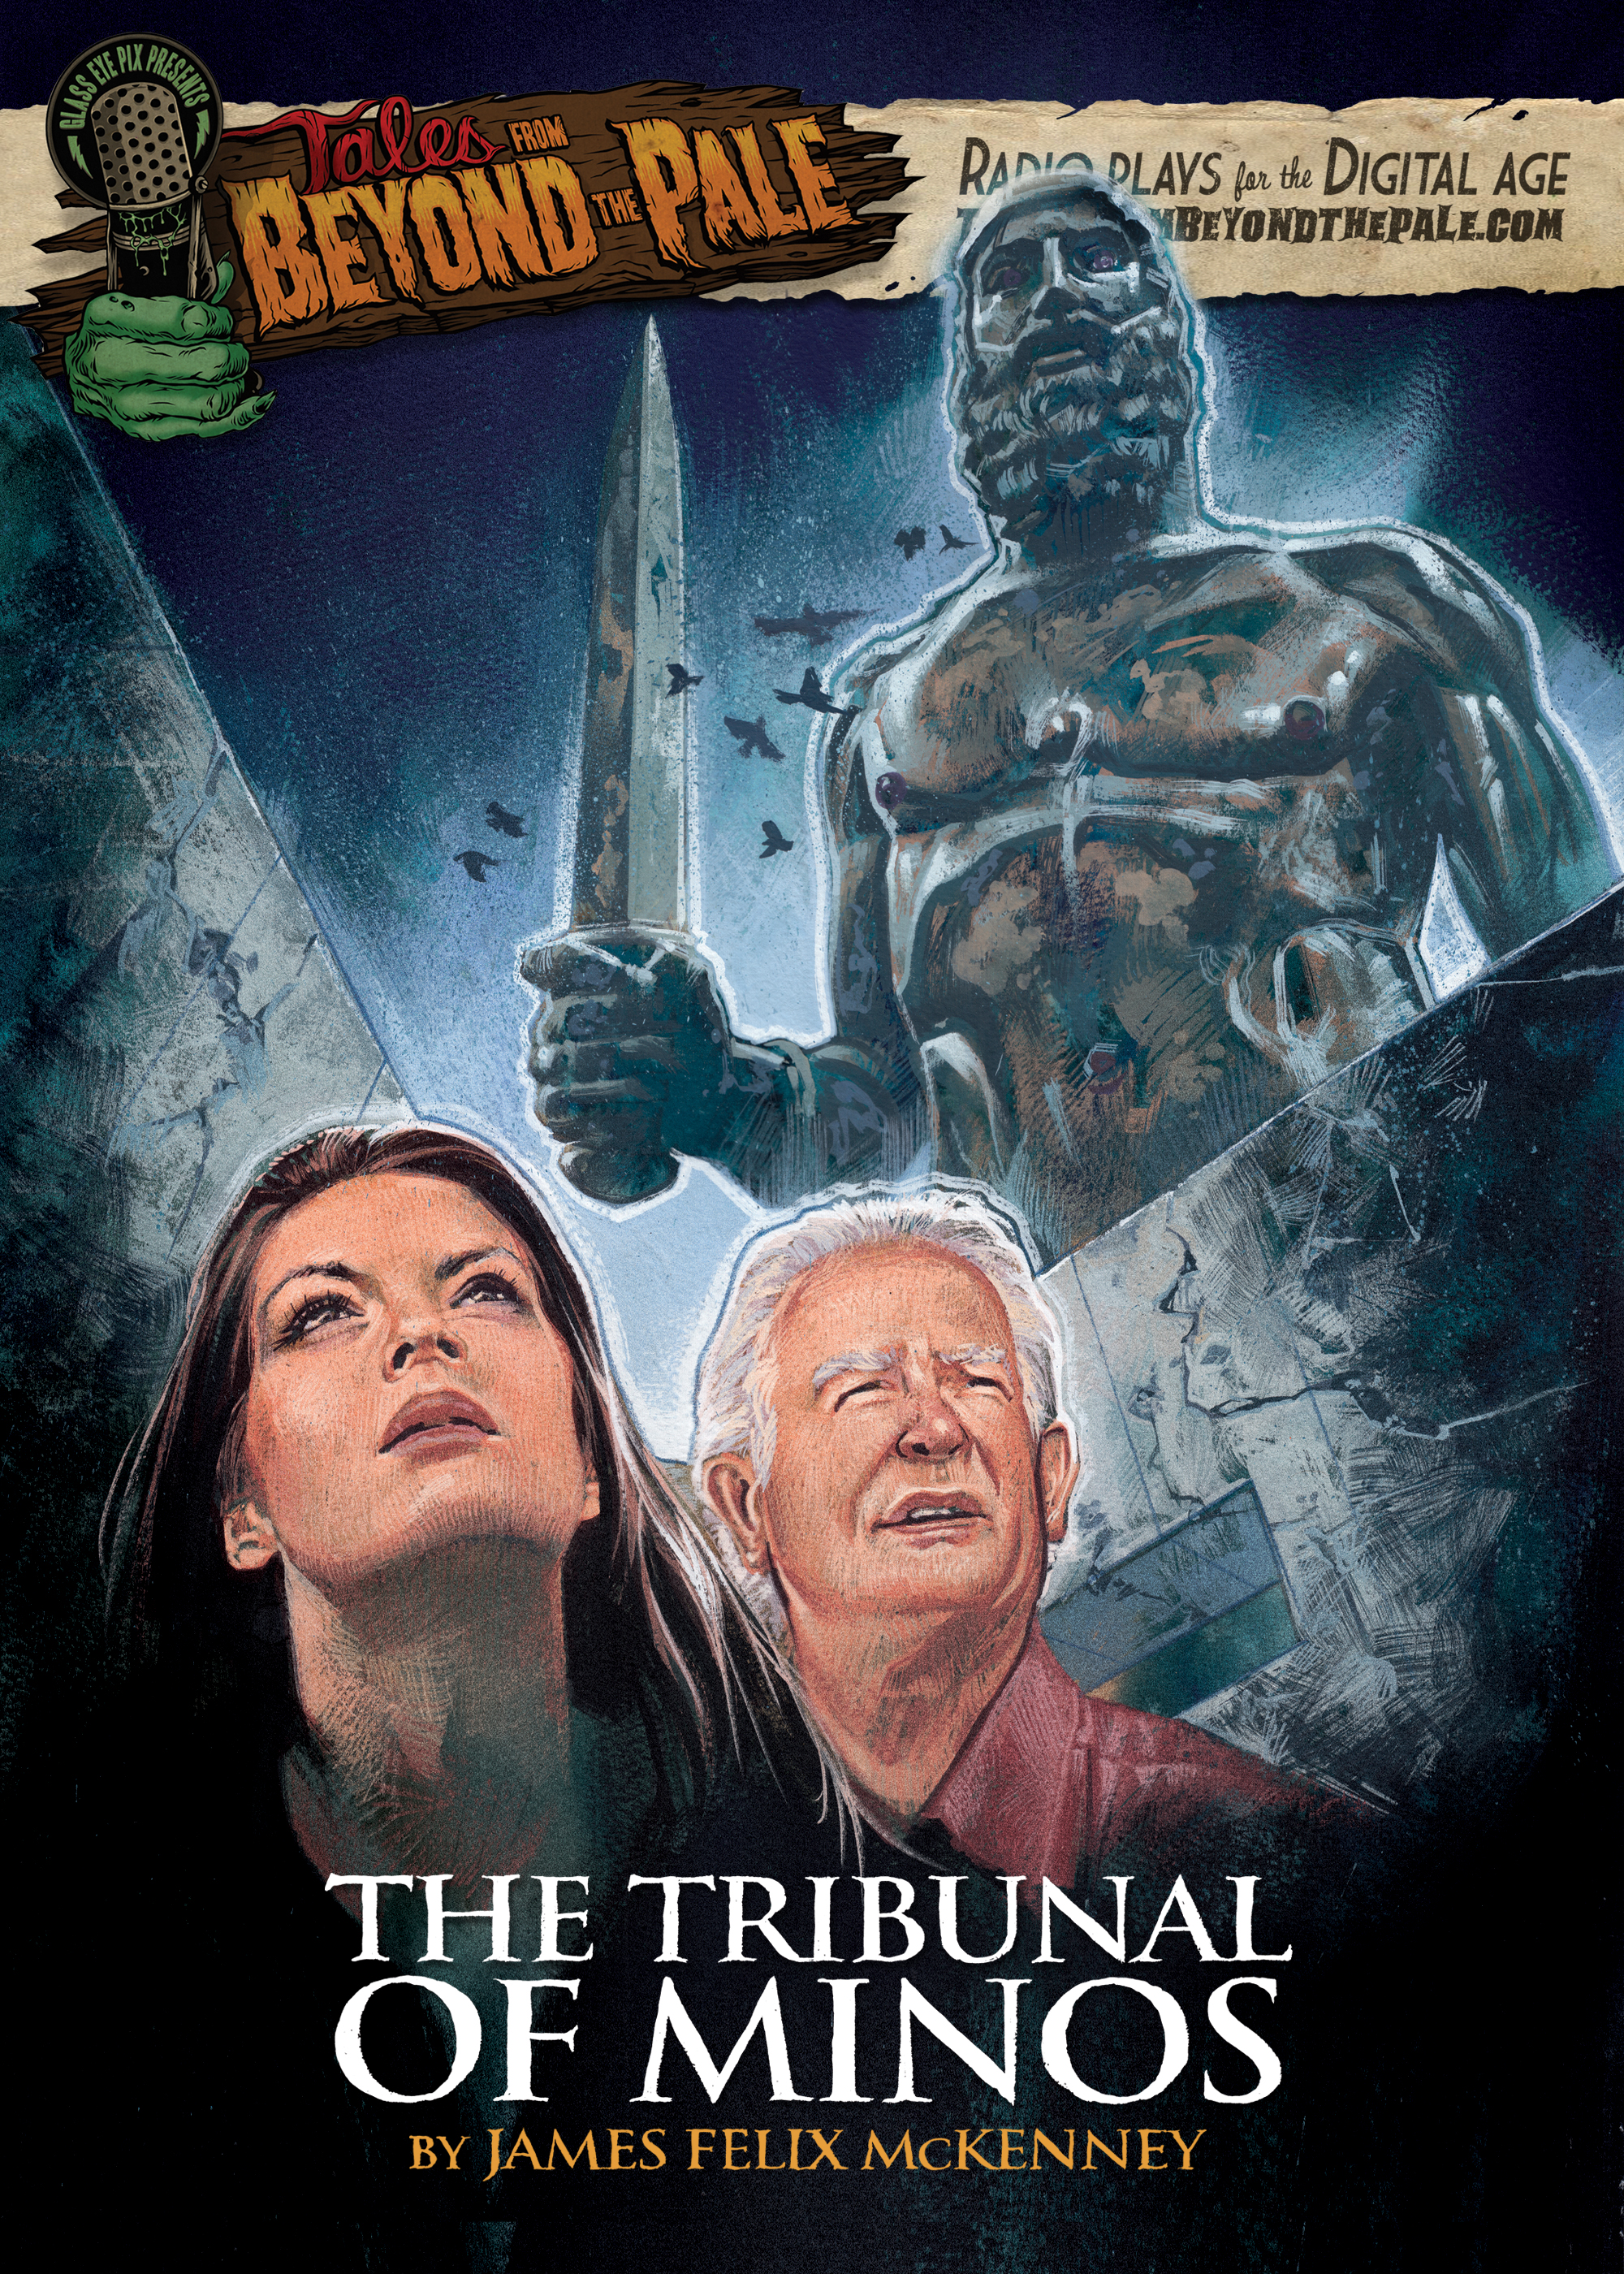 The Tribunal of Minos